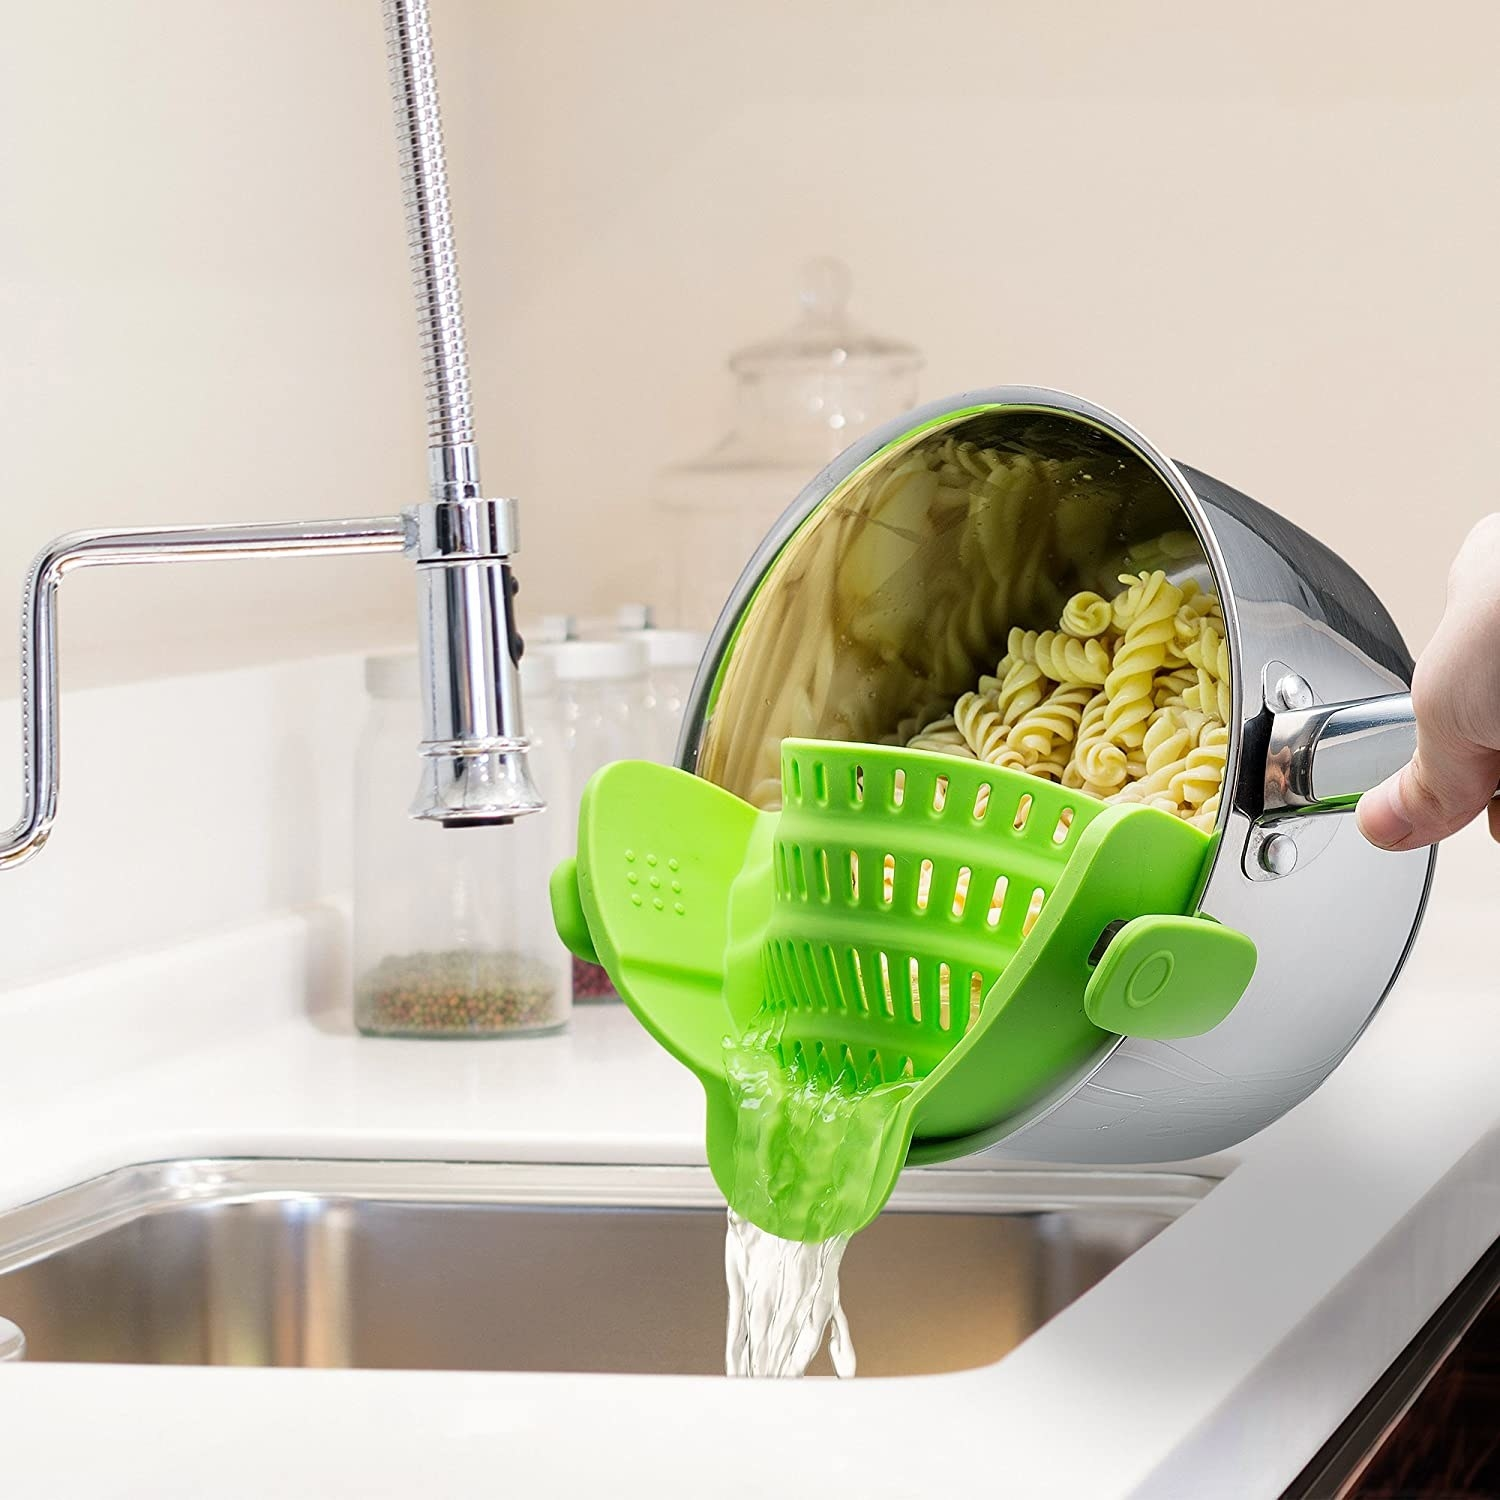 A strainer that snaps onto the side of a pot to make draining easier